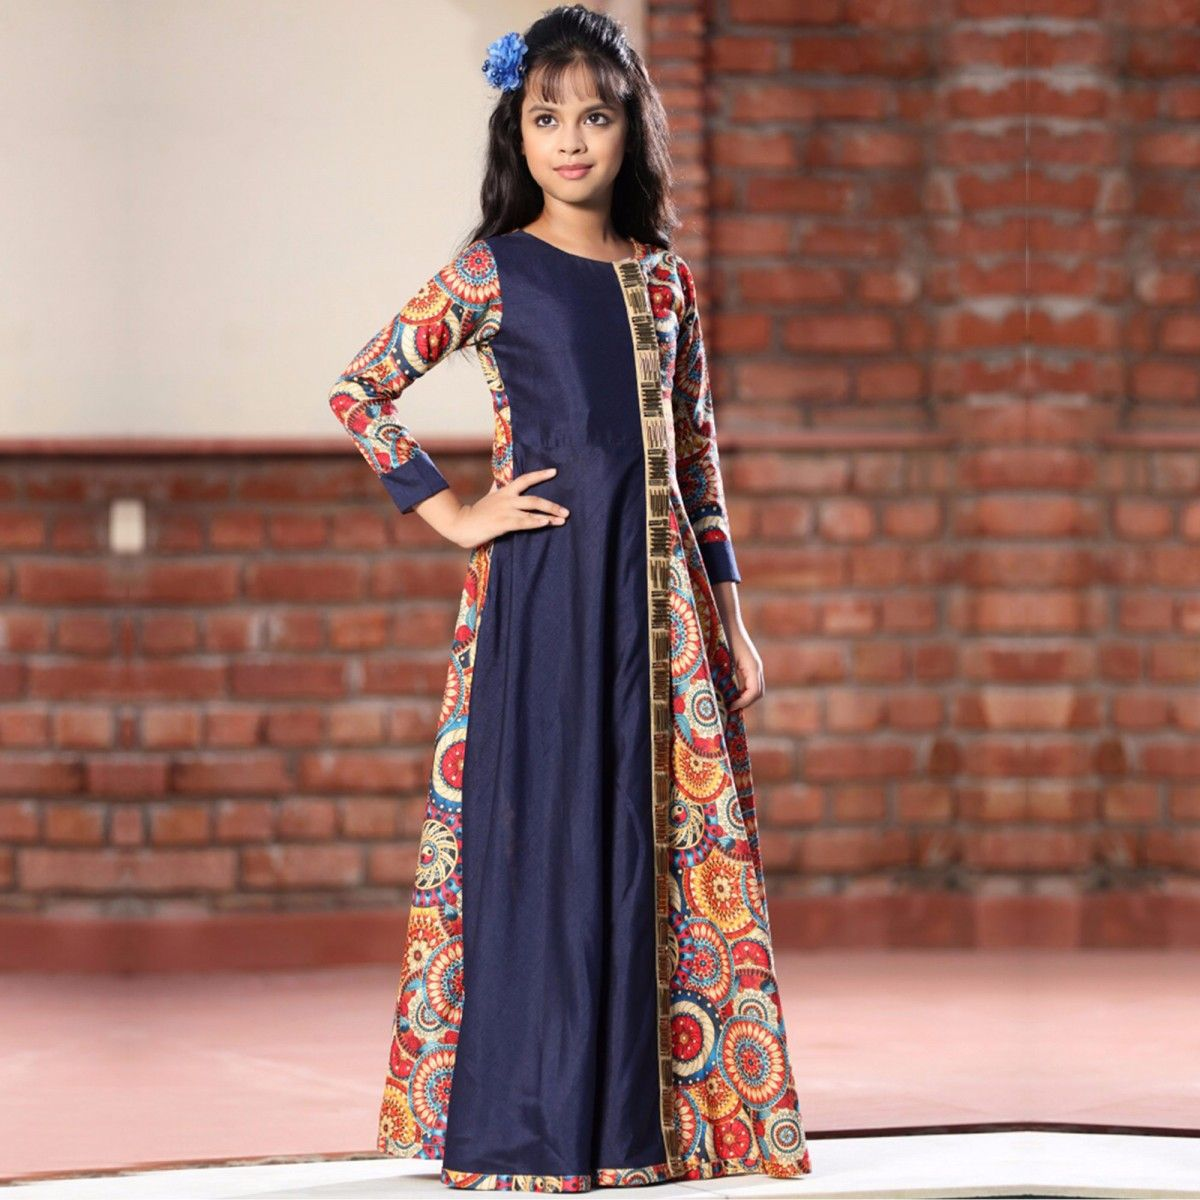 f0b4a72857 Buy Multicolored Digital Printed Silk Gown for womens online India, Best  Prices, Reviews - Peachmode